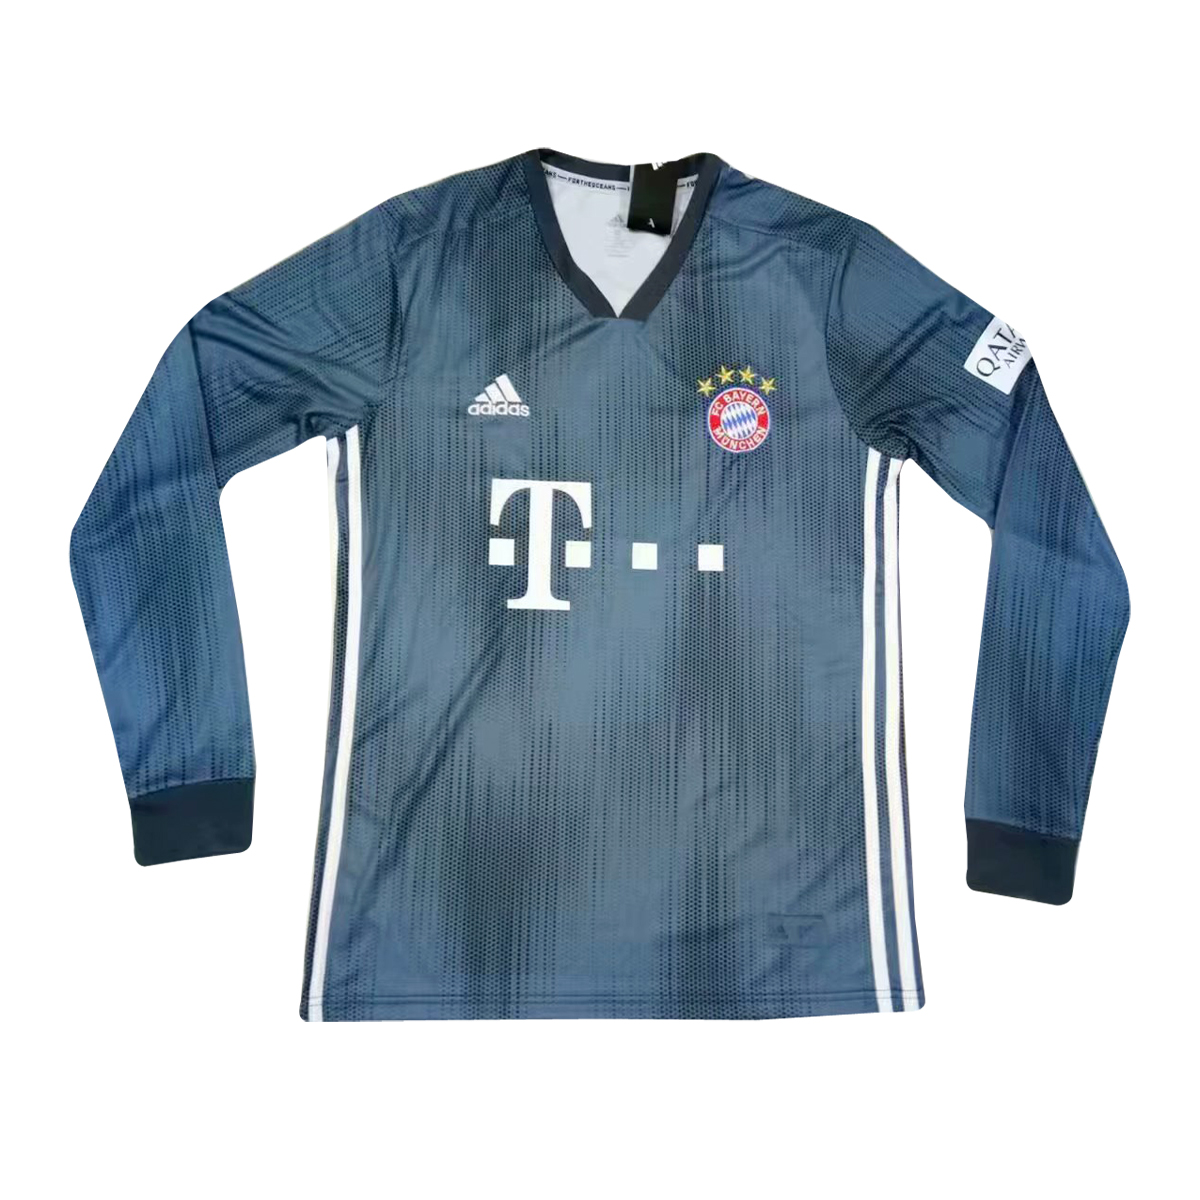 aba9c57b0 US  16.8 - Bayern Munich Third Jersey Long Sleeve Men s 2018 19 -  www.fcsoccerworld.com